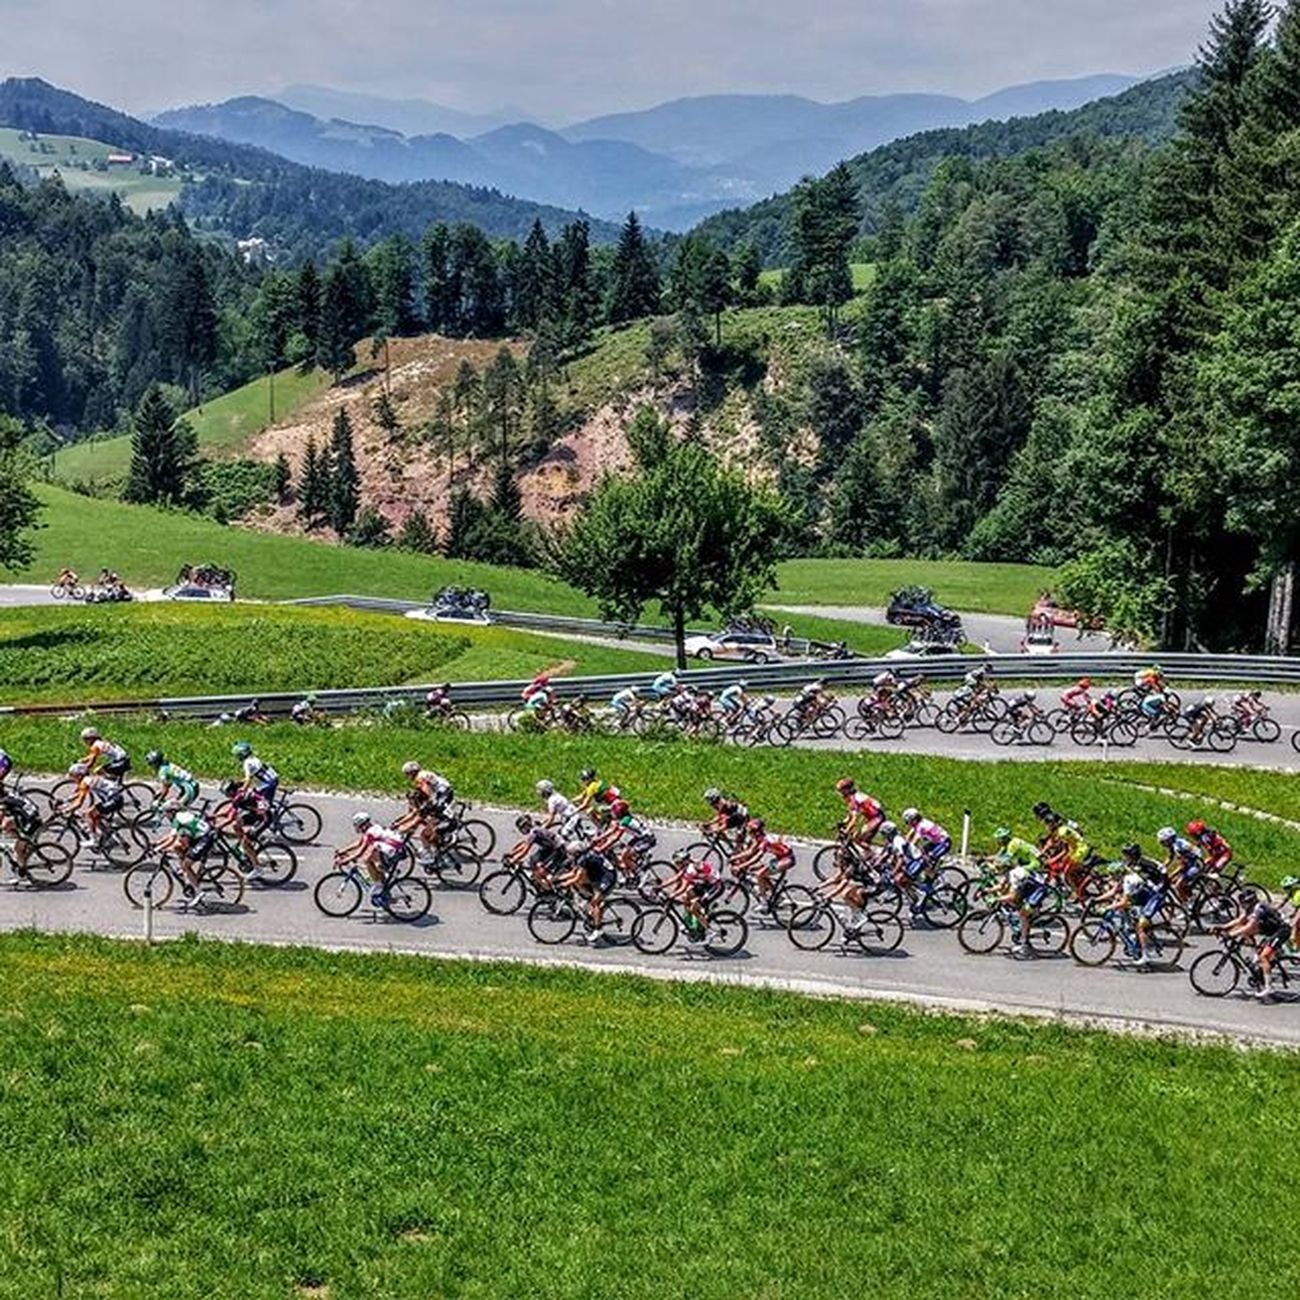 Girorosa Girorosa2015 Giro Slovenija Igslovenia IfeelsLOVEnia Wu_slovenia Ciclismo Cipollini Womenonwheels Womenscycling Cyclinggirl Cycling Stravacycling Stravaphoto Whataview Ig_slovenia Lucine Cheering Gogarmin Cyclinglife Cyclingphotos Girlsride Girlsonbike Landscape_captures keeponsmiling nevergiveup lifeisgood GIRO ROSA in sloveNia 🚴🚴🚵🚴🚴